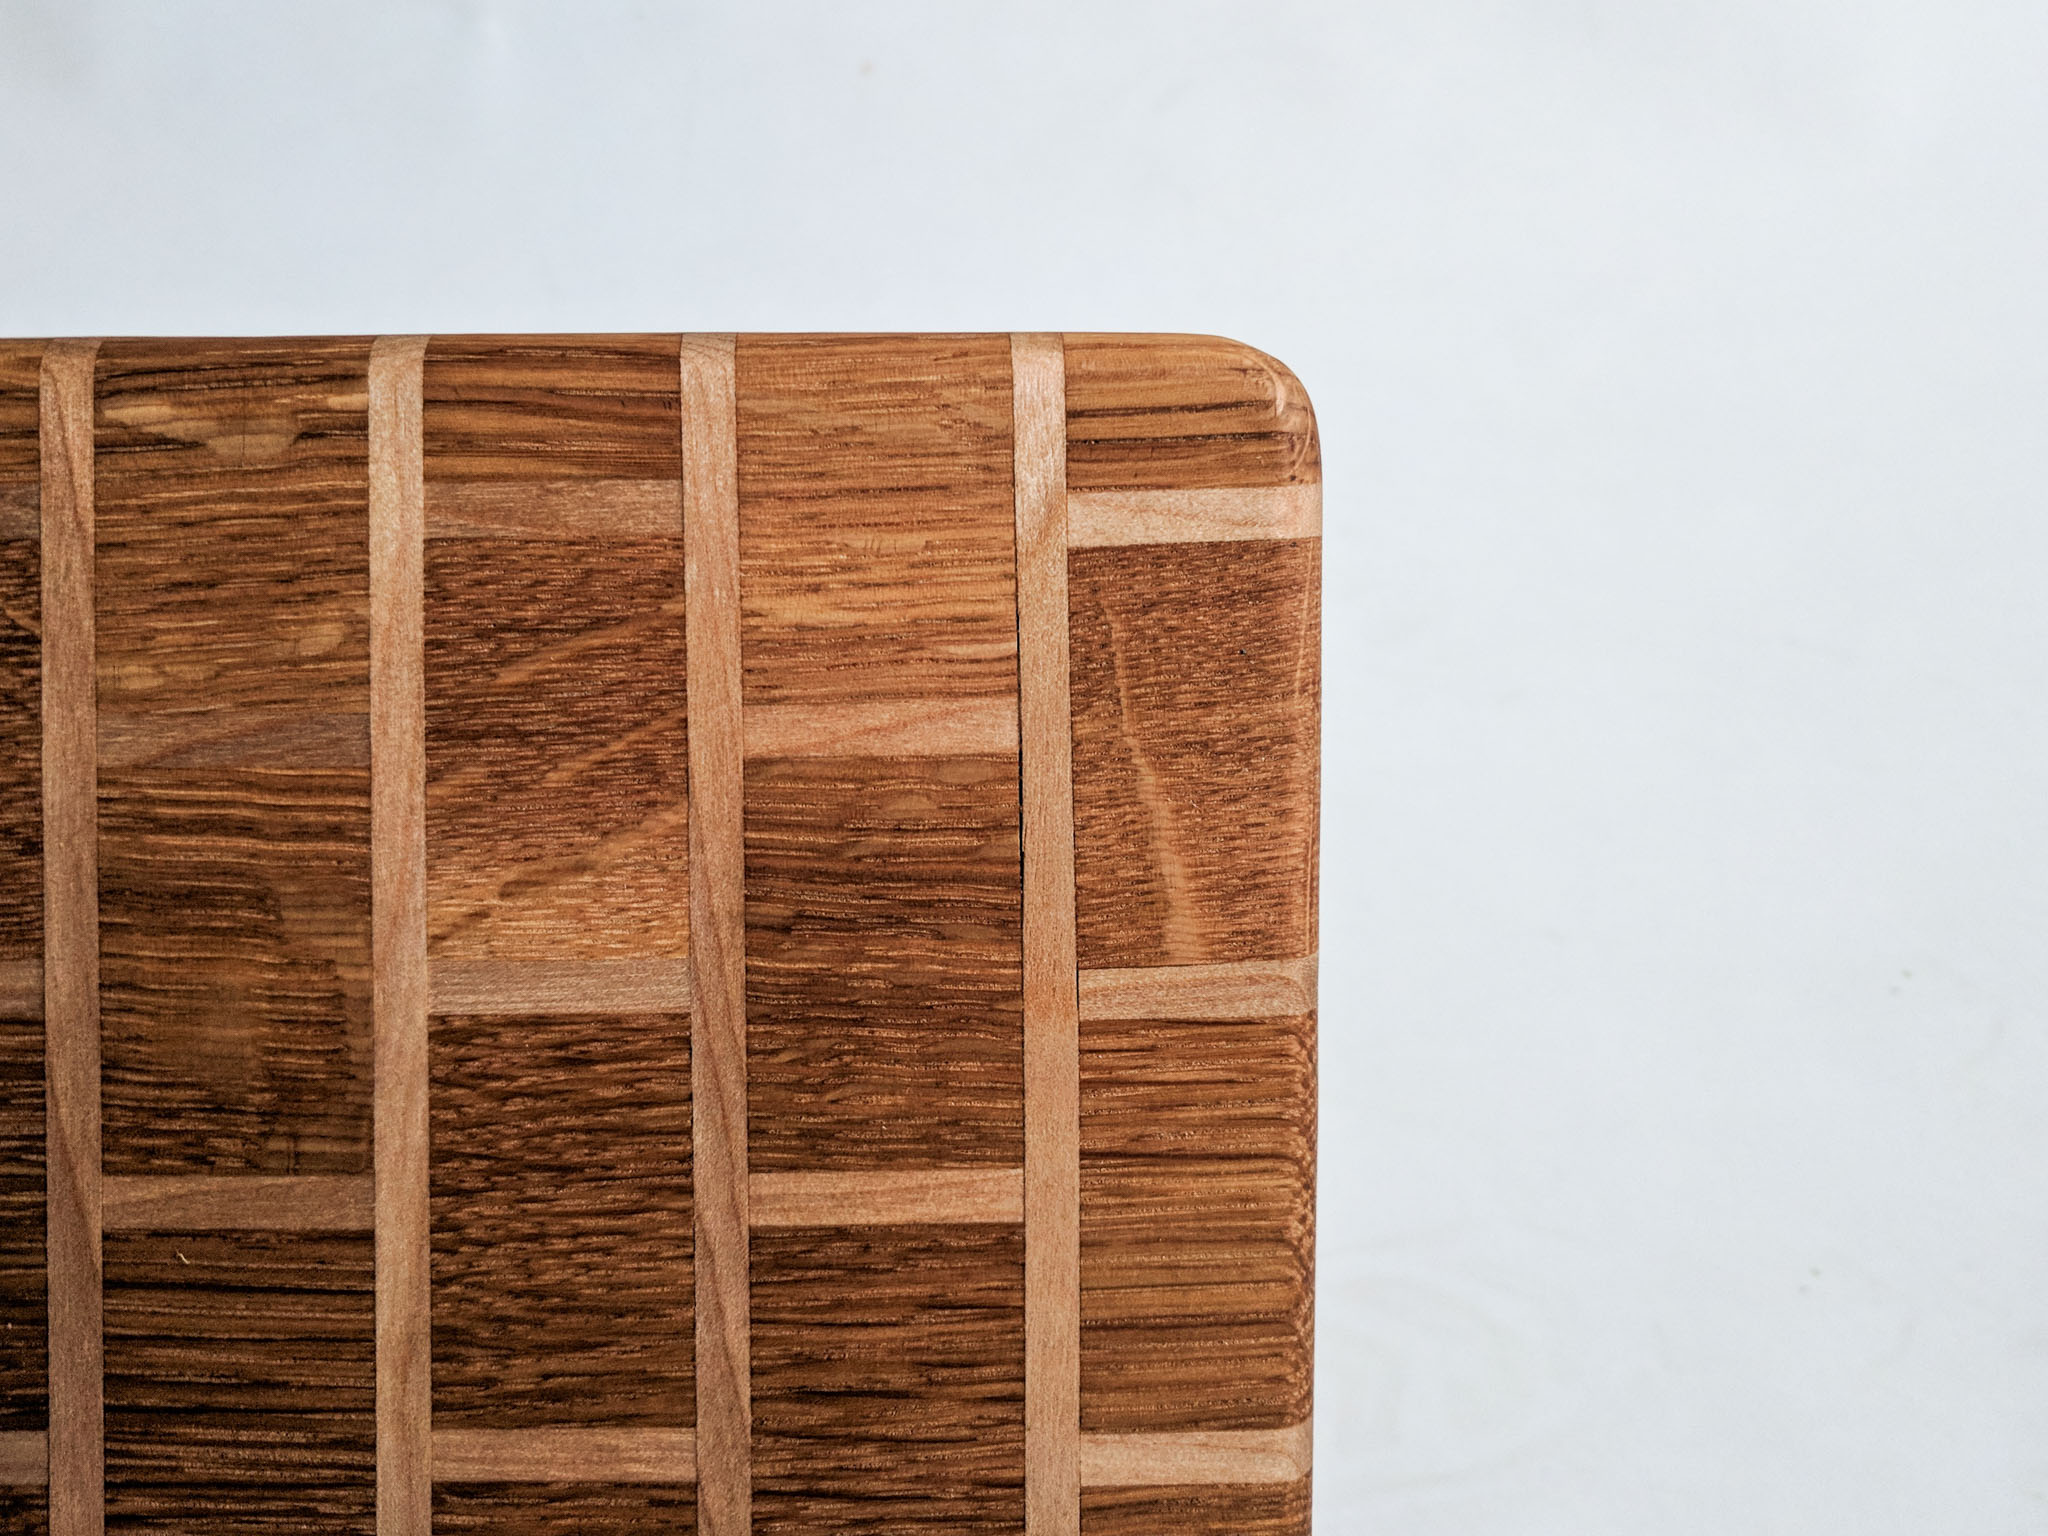 CuttingBoards-071418-12.jpg